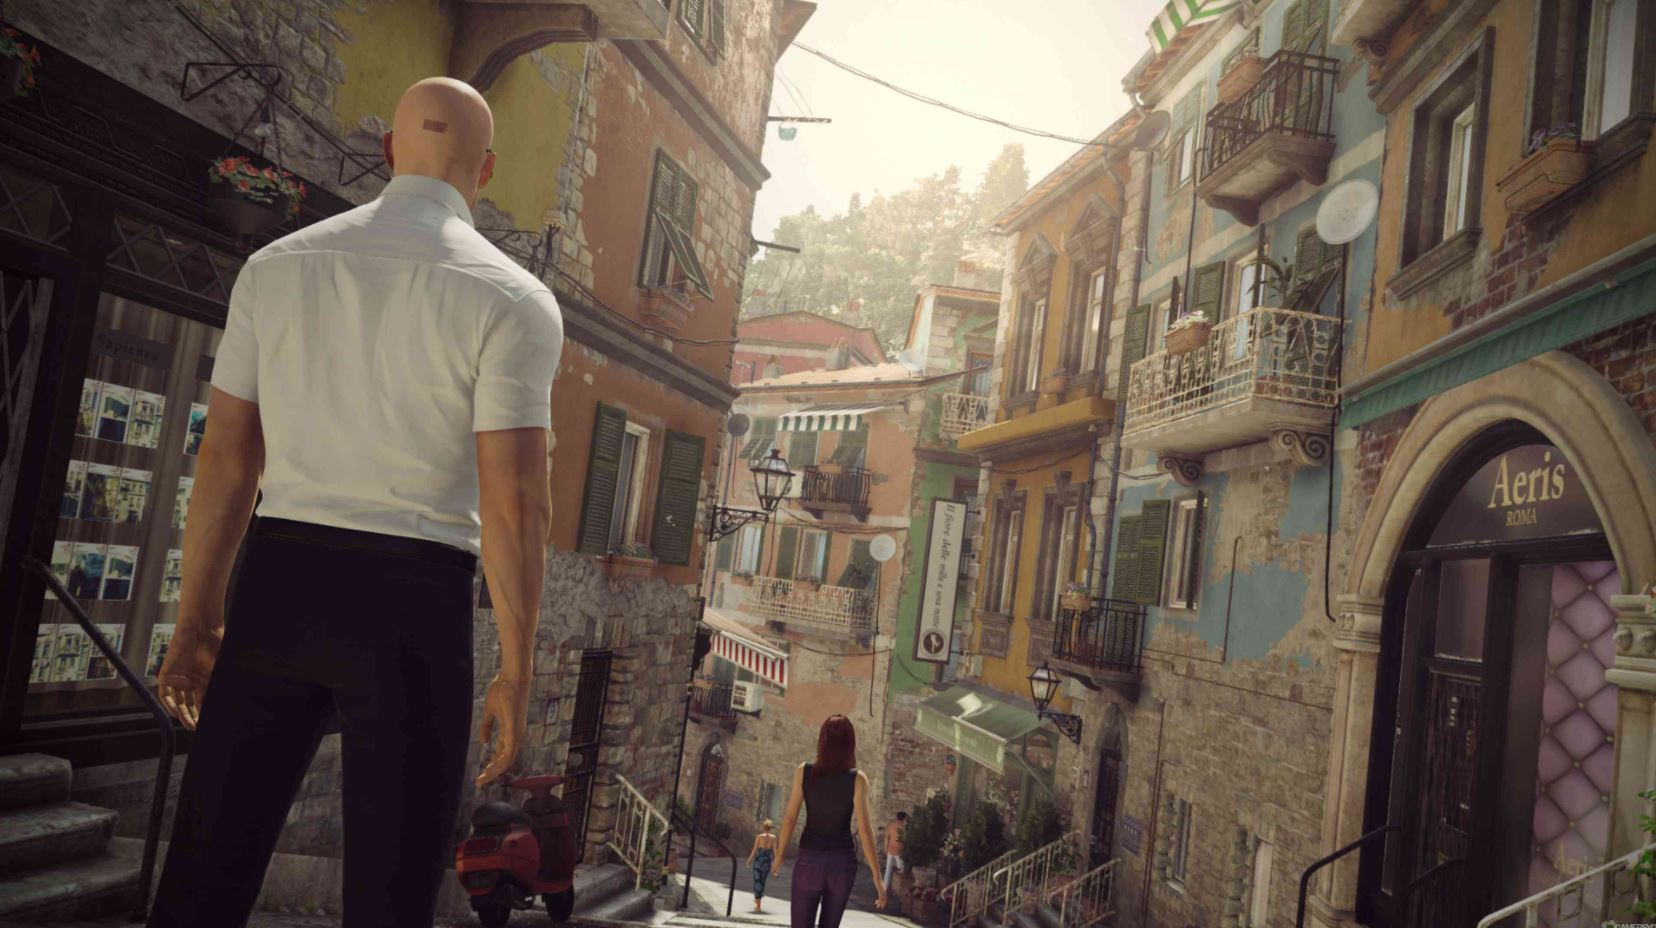 hitman-3-review-ps5-the-ultimate-version-of-hitman-and-a-confident-showcase-of-the-ps5s-power-2